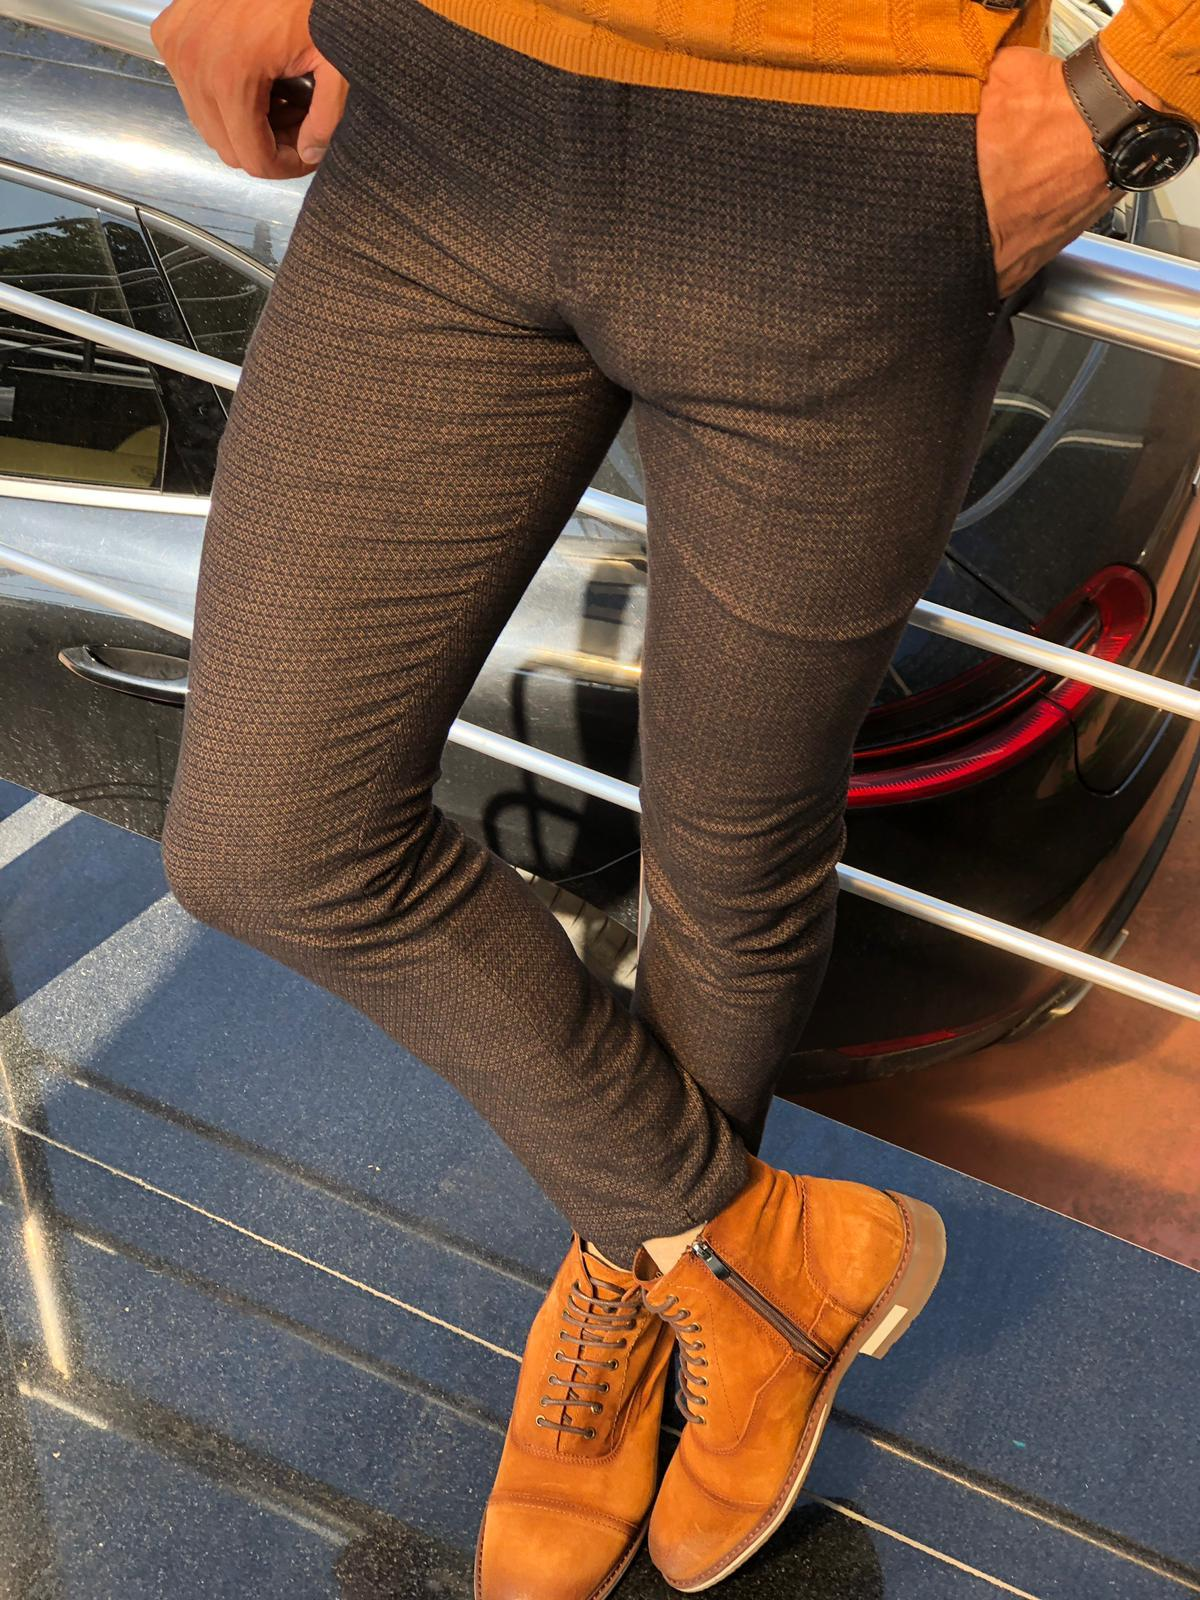 Malacan Slim-fit Patterned Pants Camel